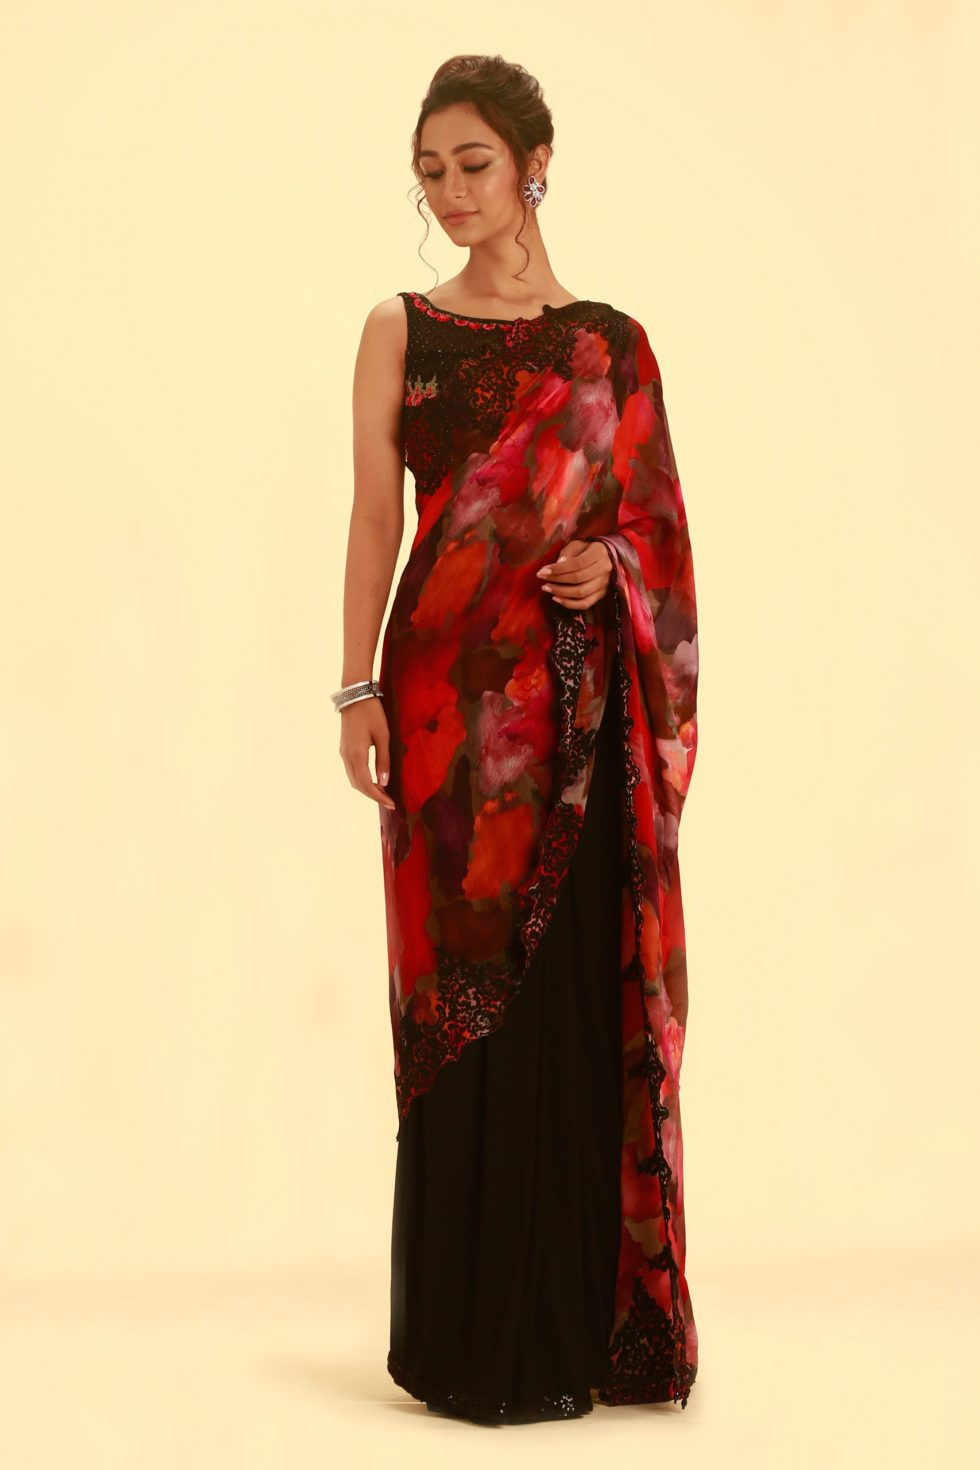 Raven Black Saree with Contrast Printed Blouse Pallu and Matching Blouse with Floral Motifs